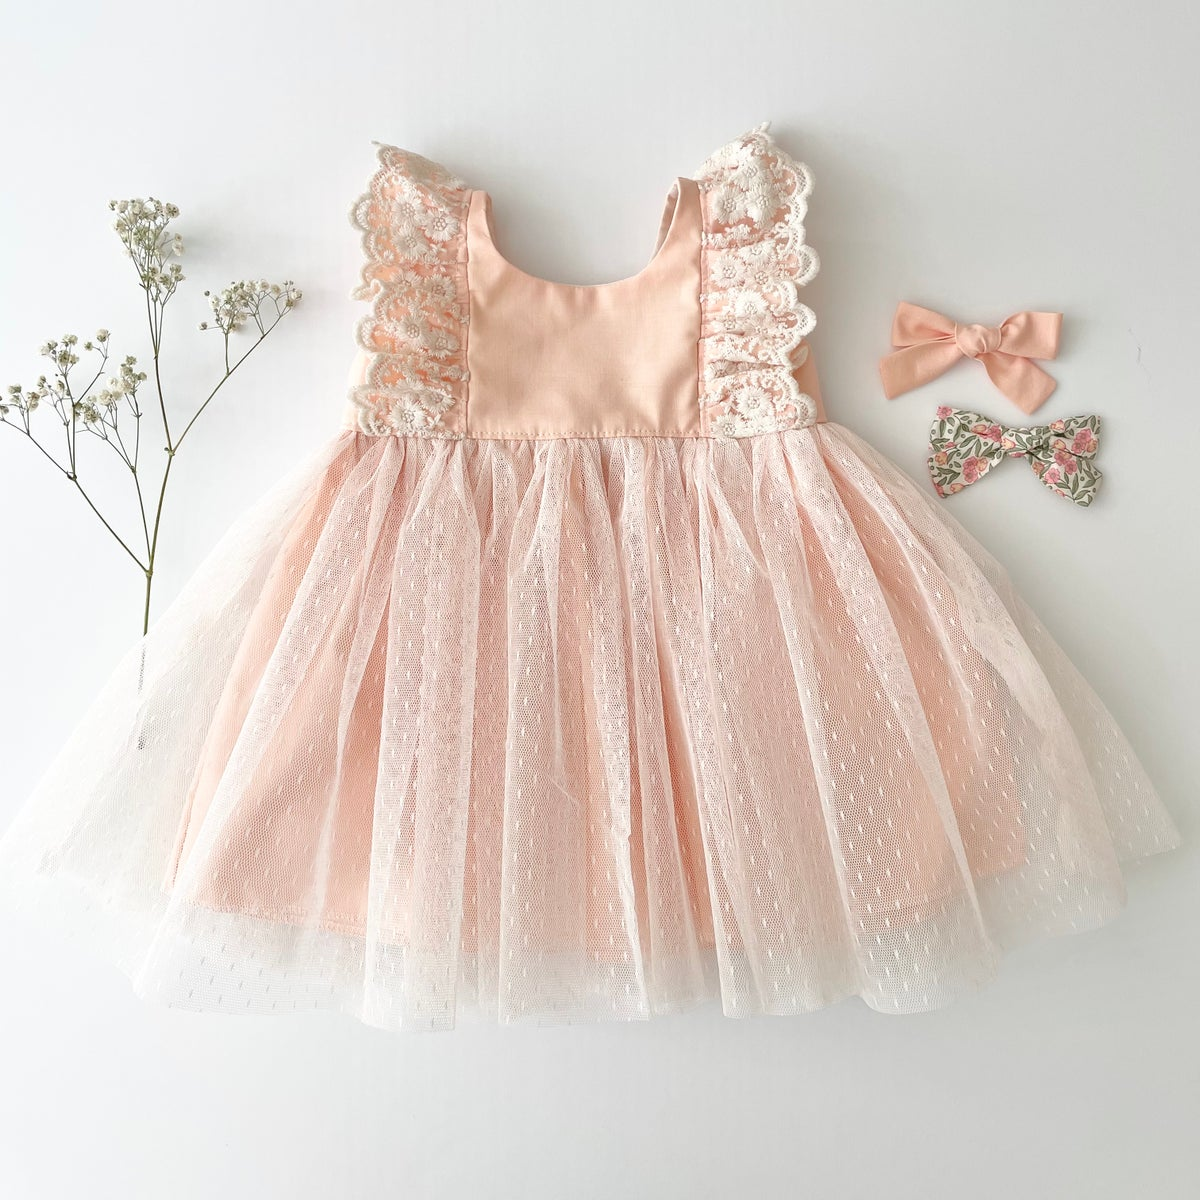 Image of Special occasion dress in peach